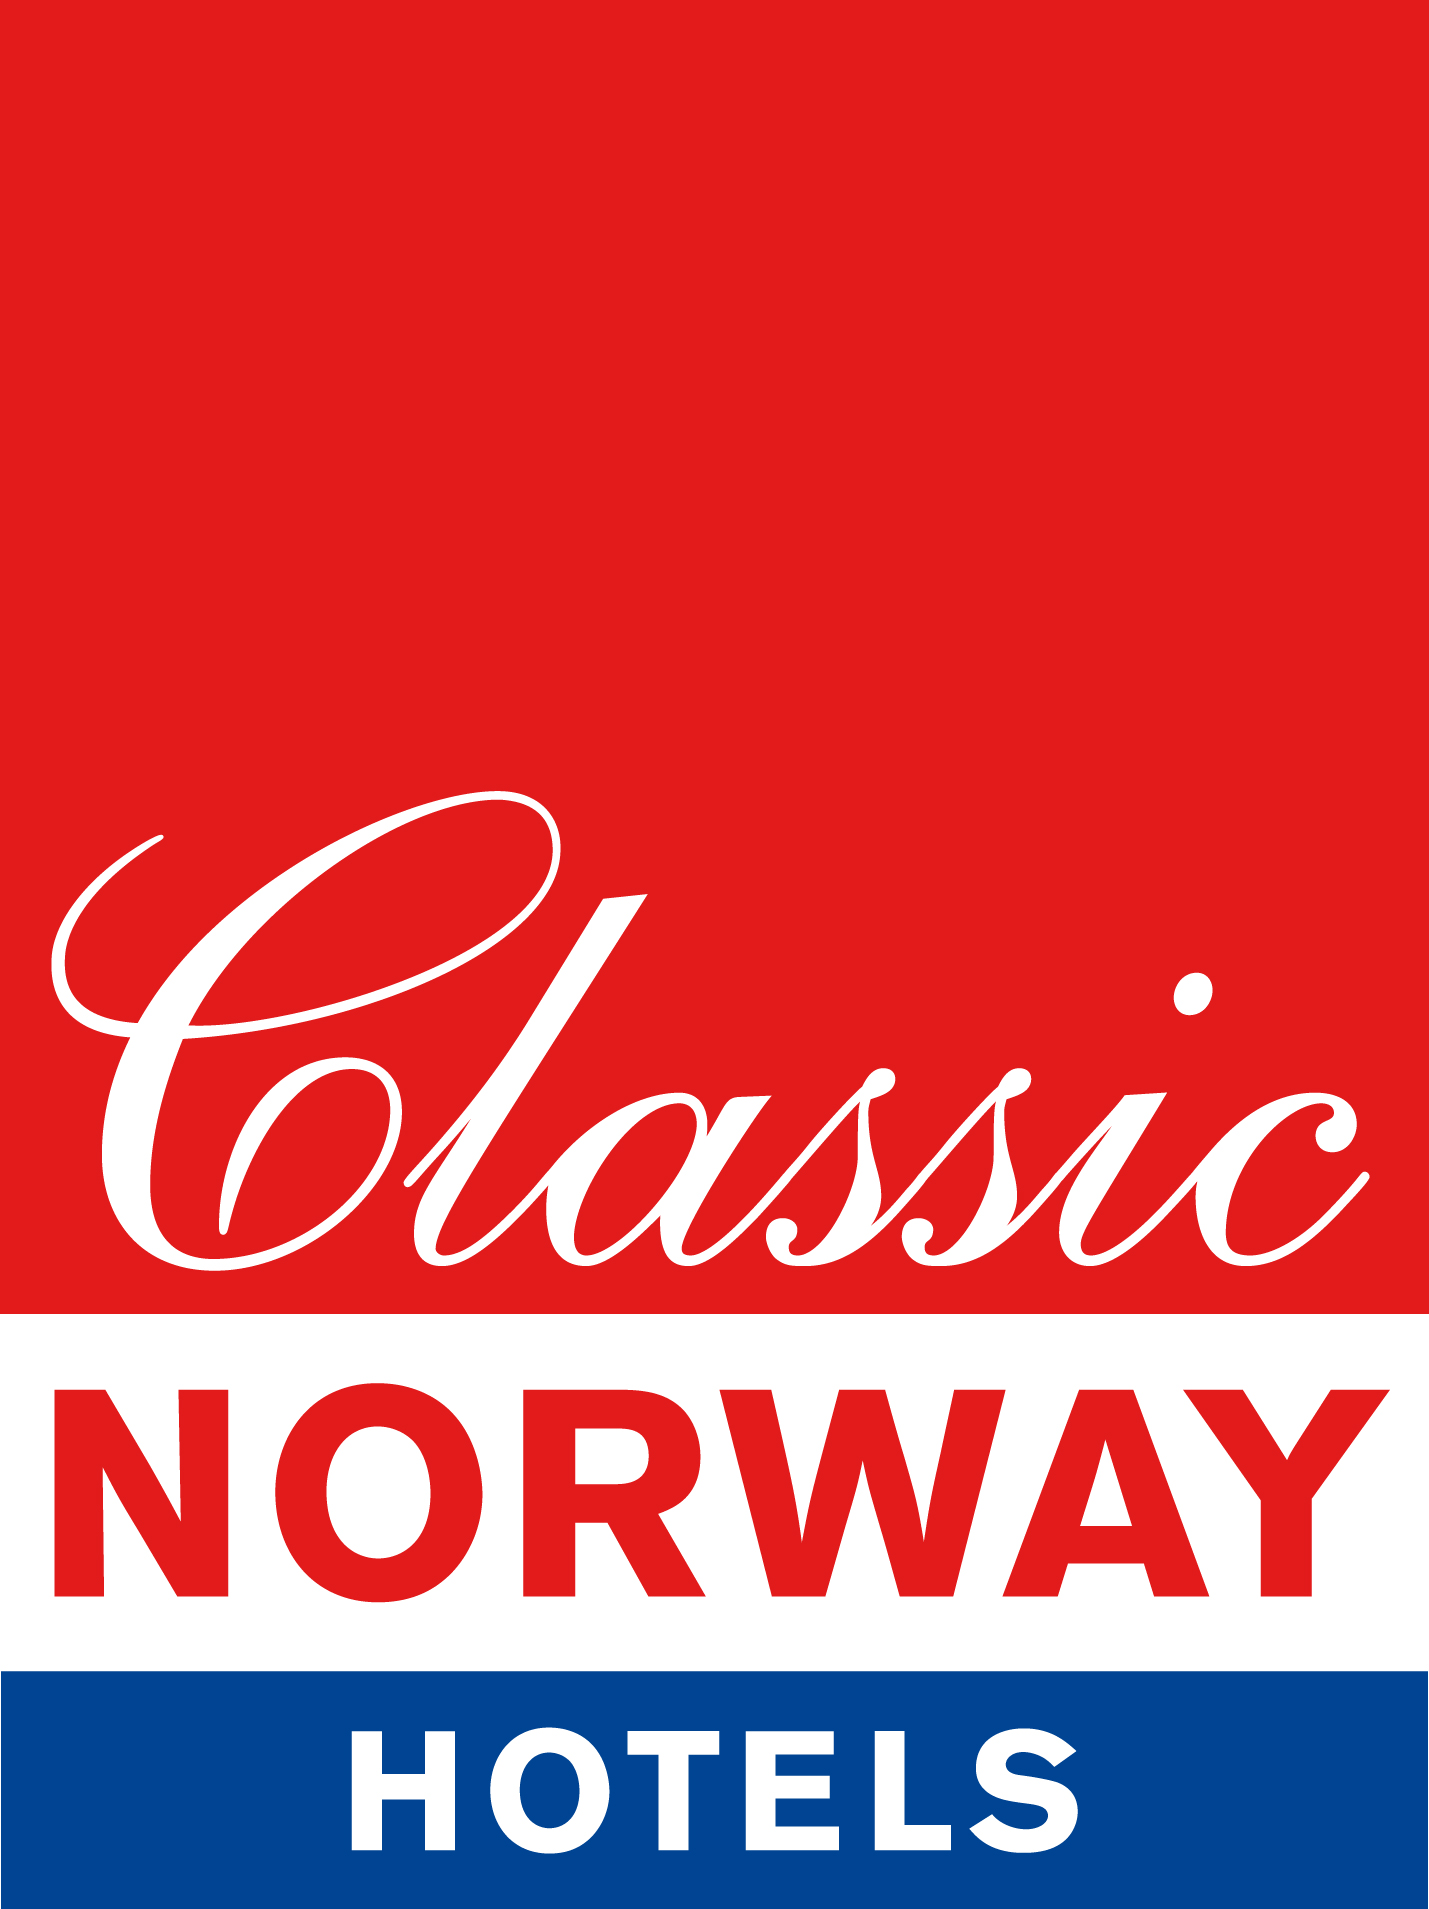 CLASSIC NORWAY DRIFT AS